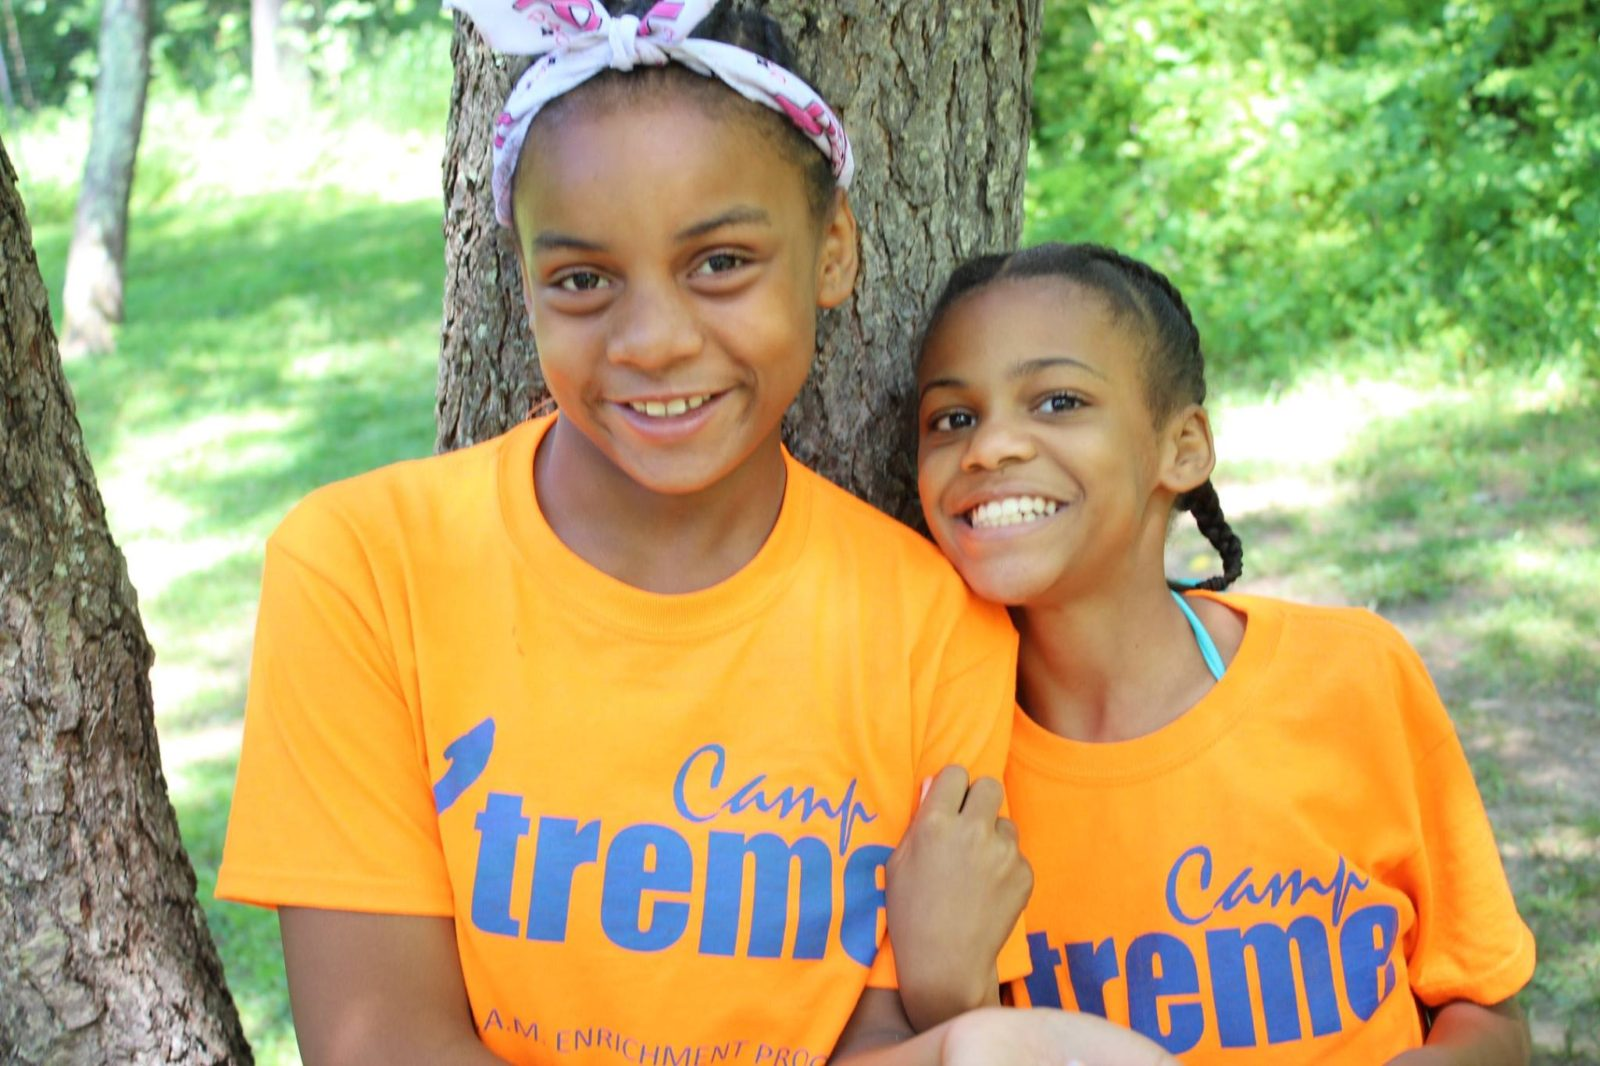 Camp Xtreme